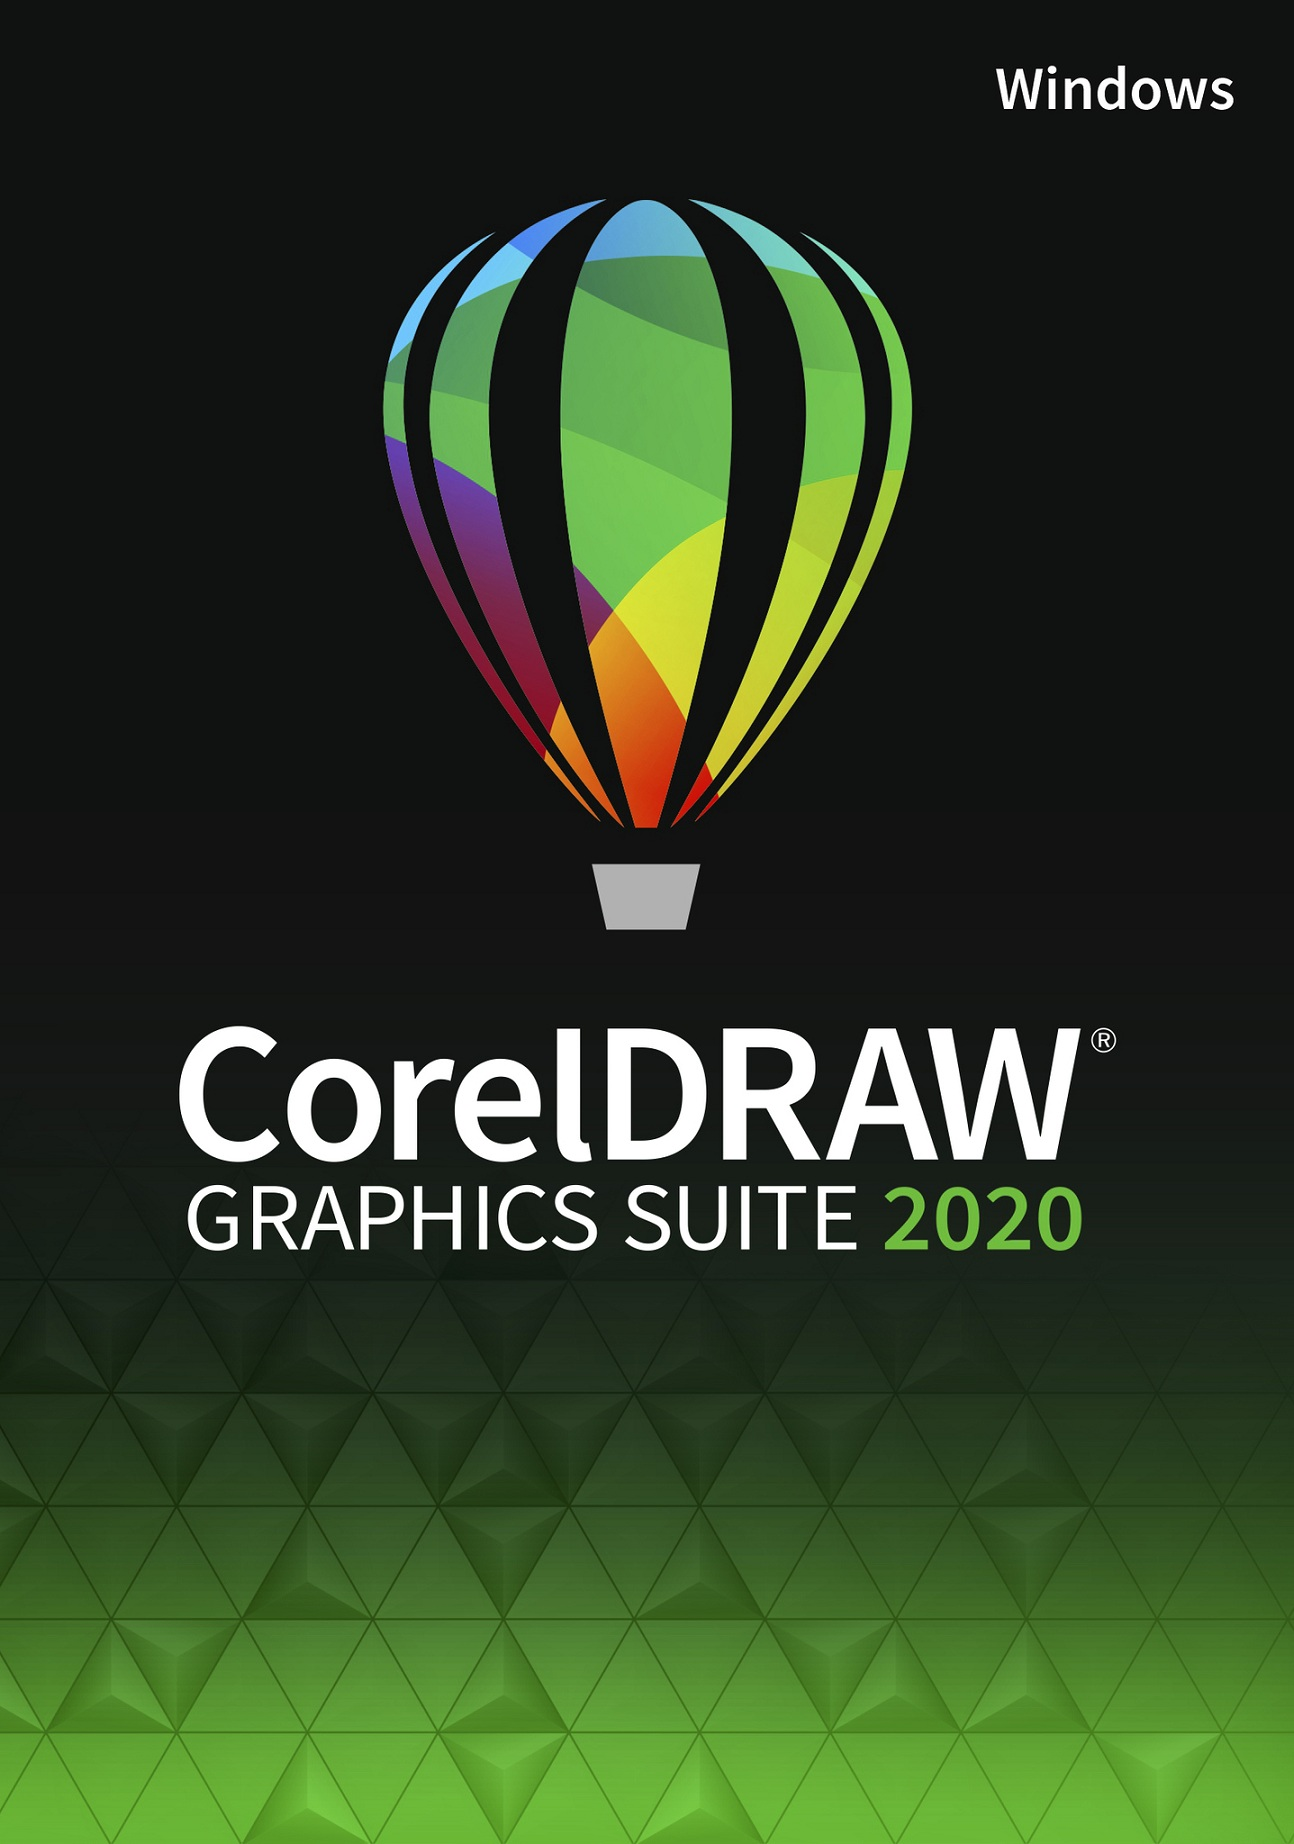 CorelDRAW Graphics Suite 2020 Education License (Windows) (Single User)